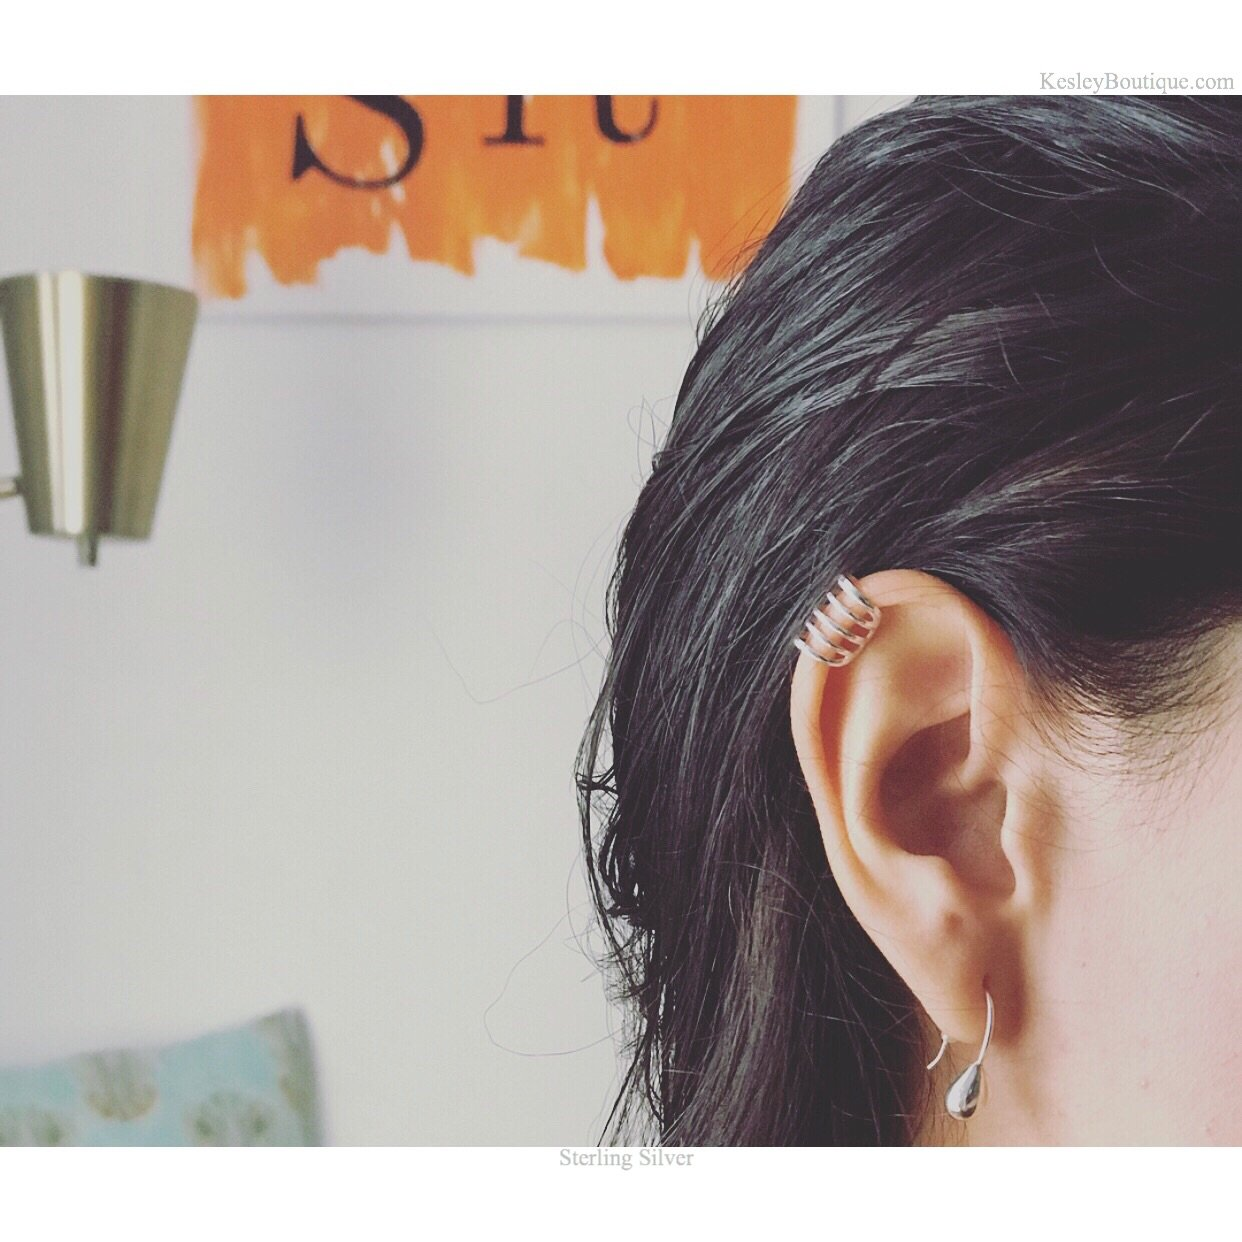 Ear Crawler in sterling silver by Kesley Boutique